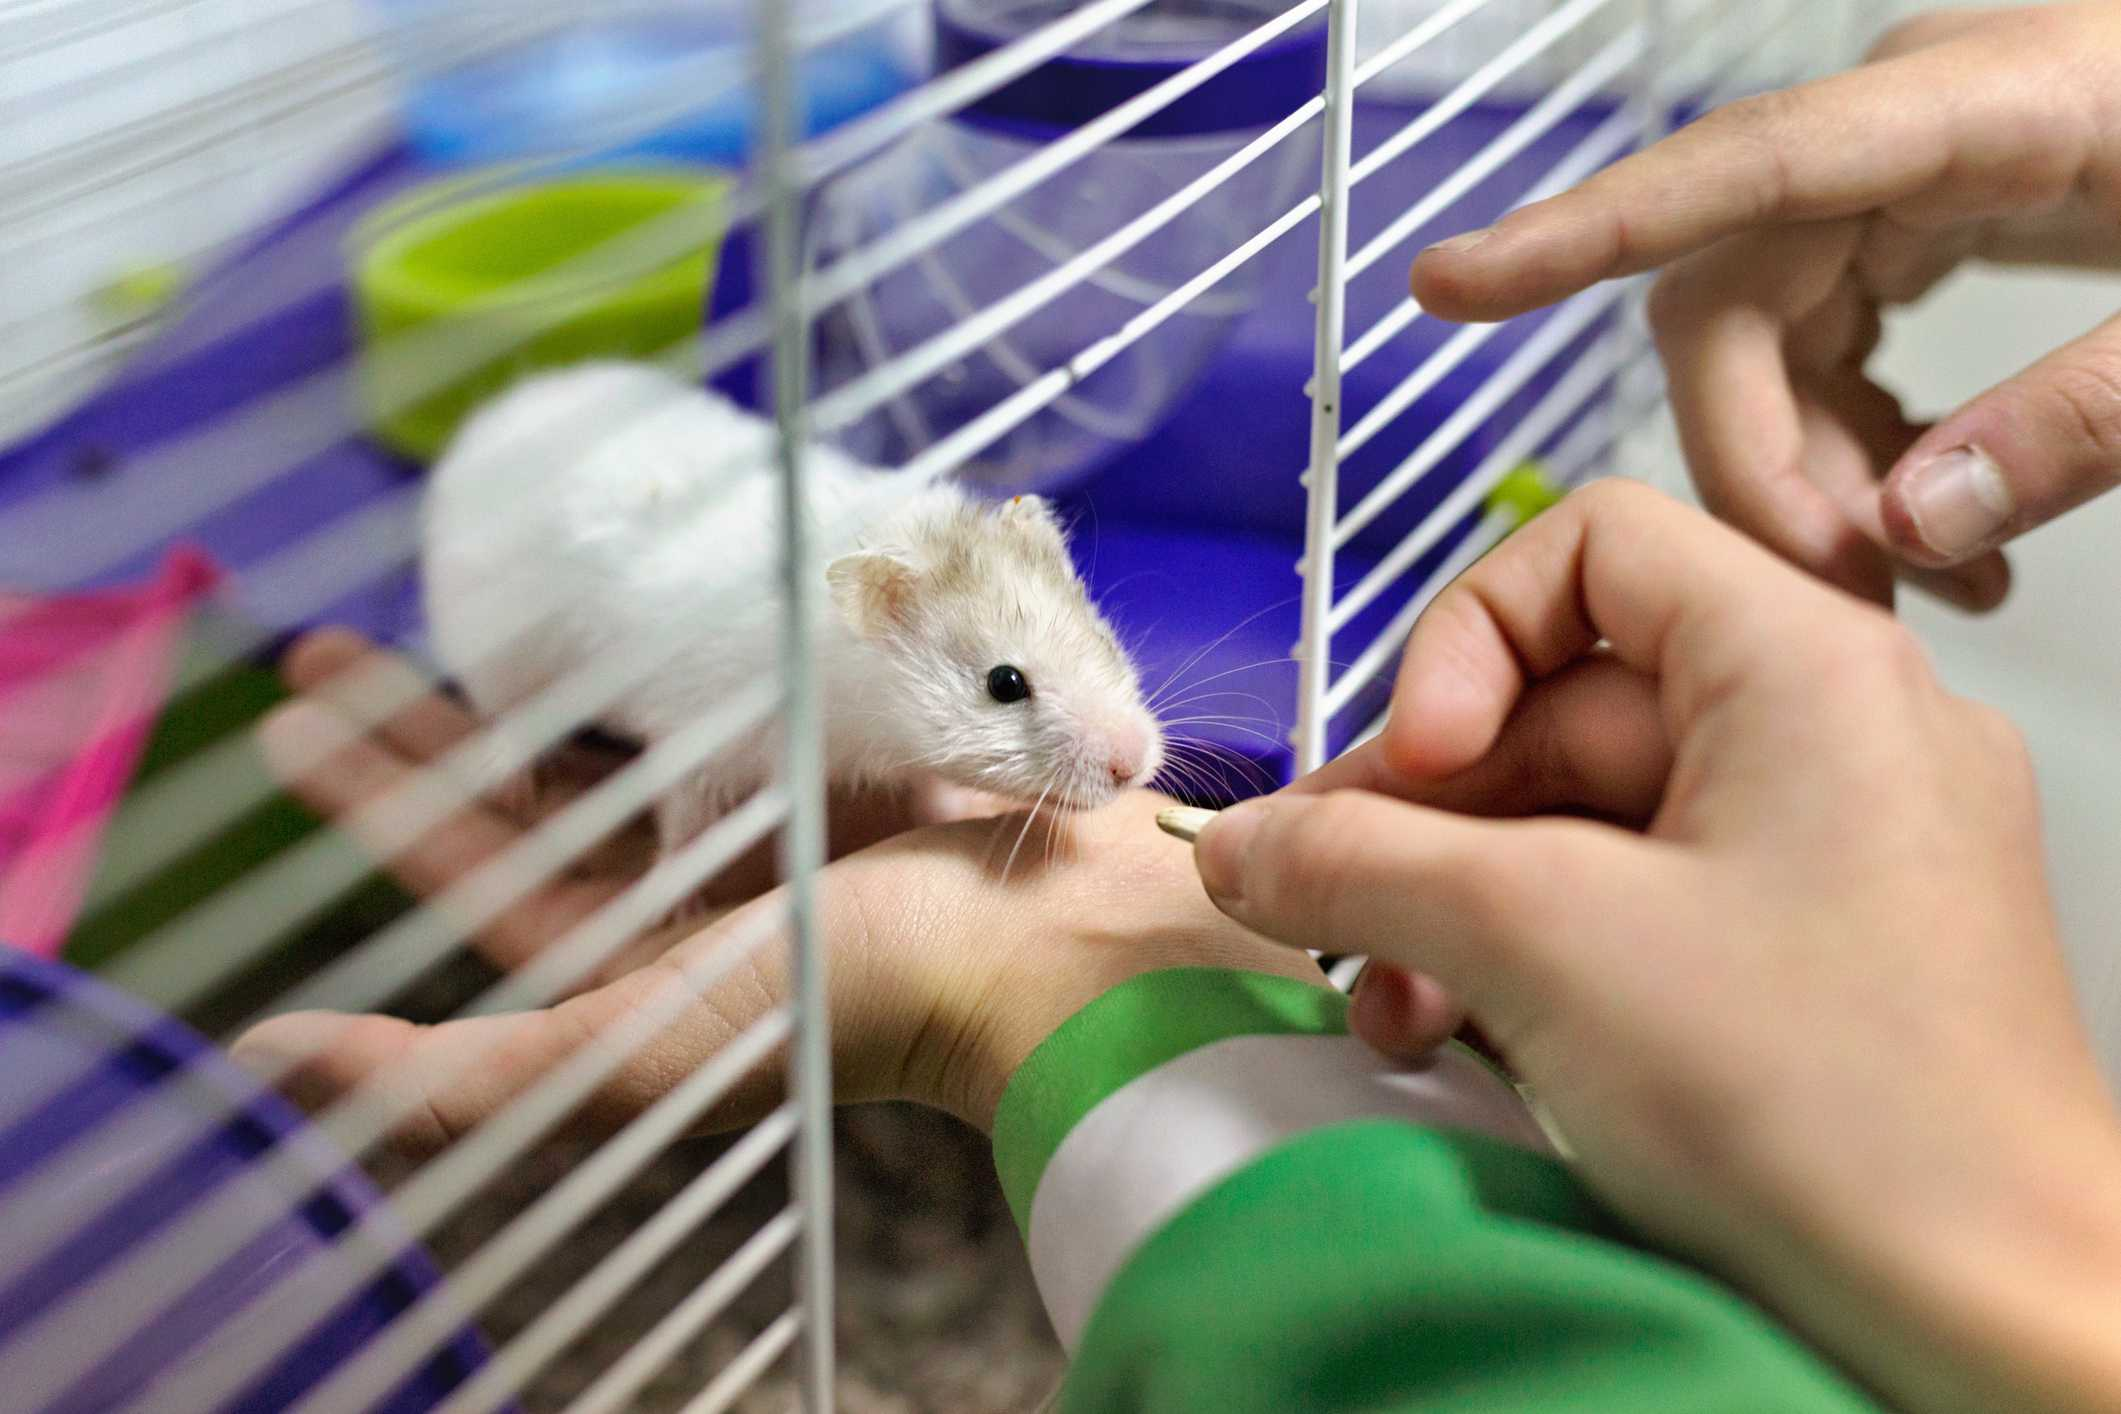 Children feeding a hamster through the door of its cage